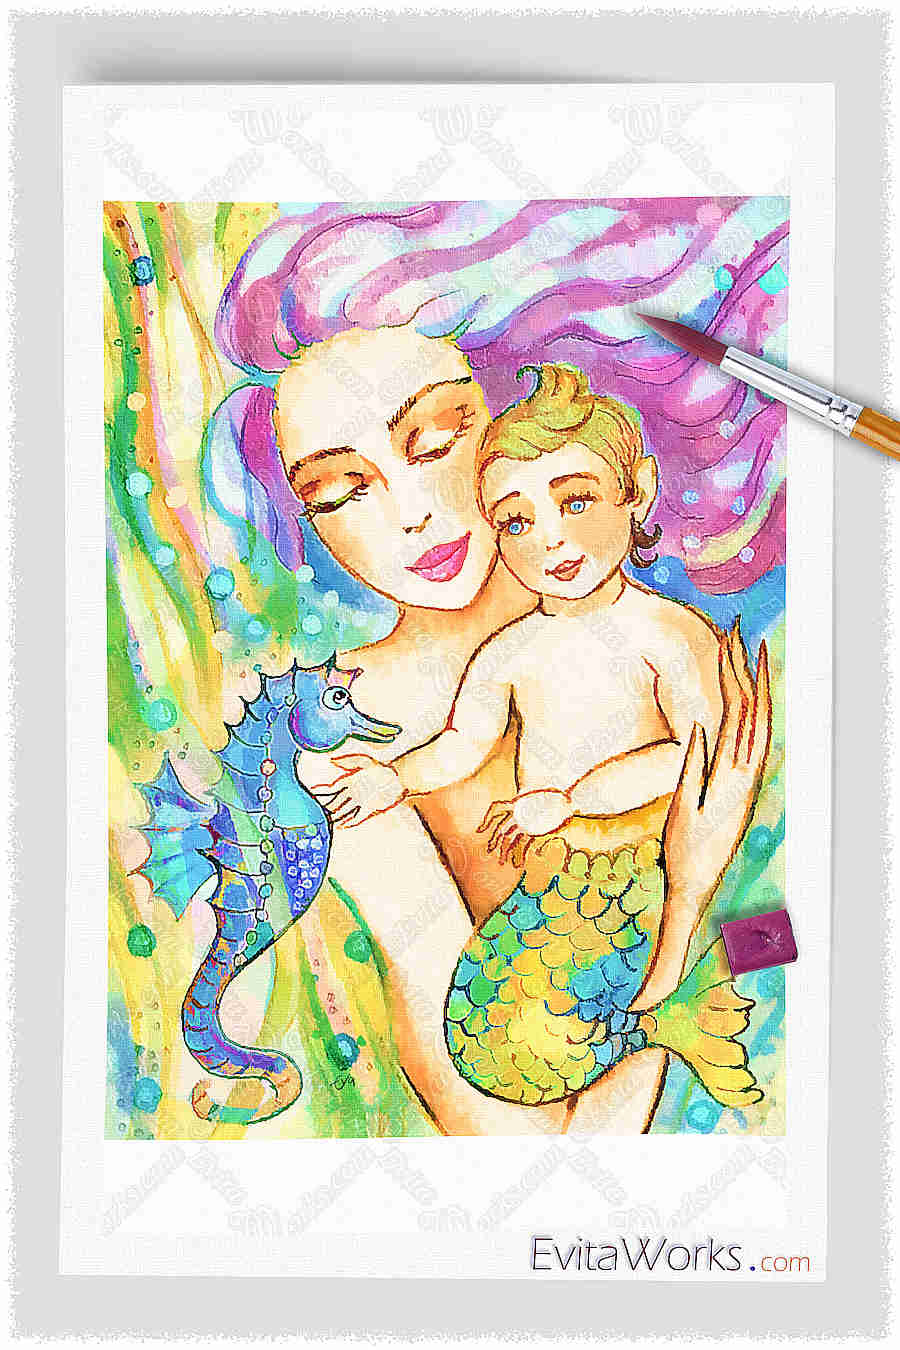 Mermaid 40 ~ EvitaWorks